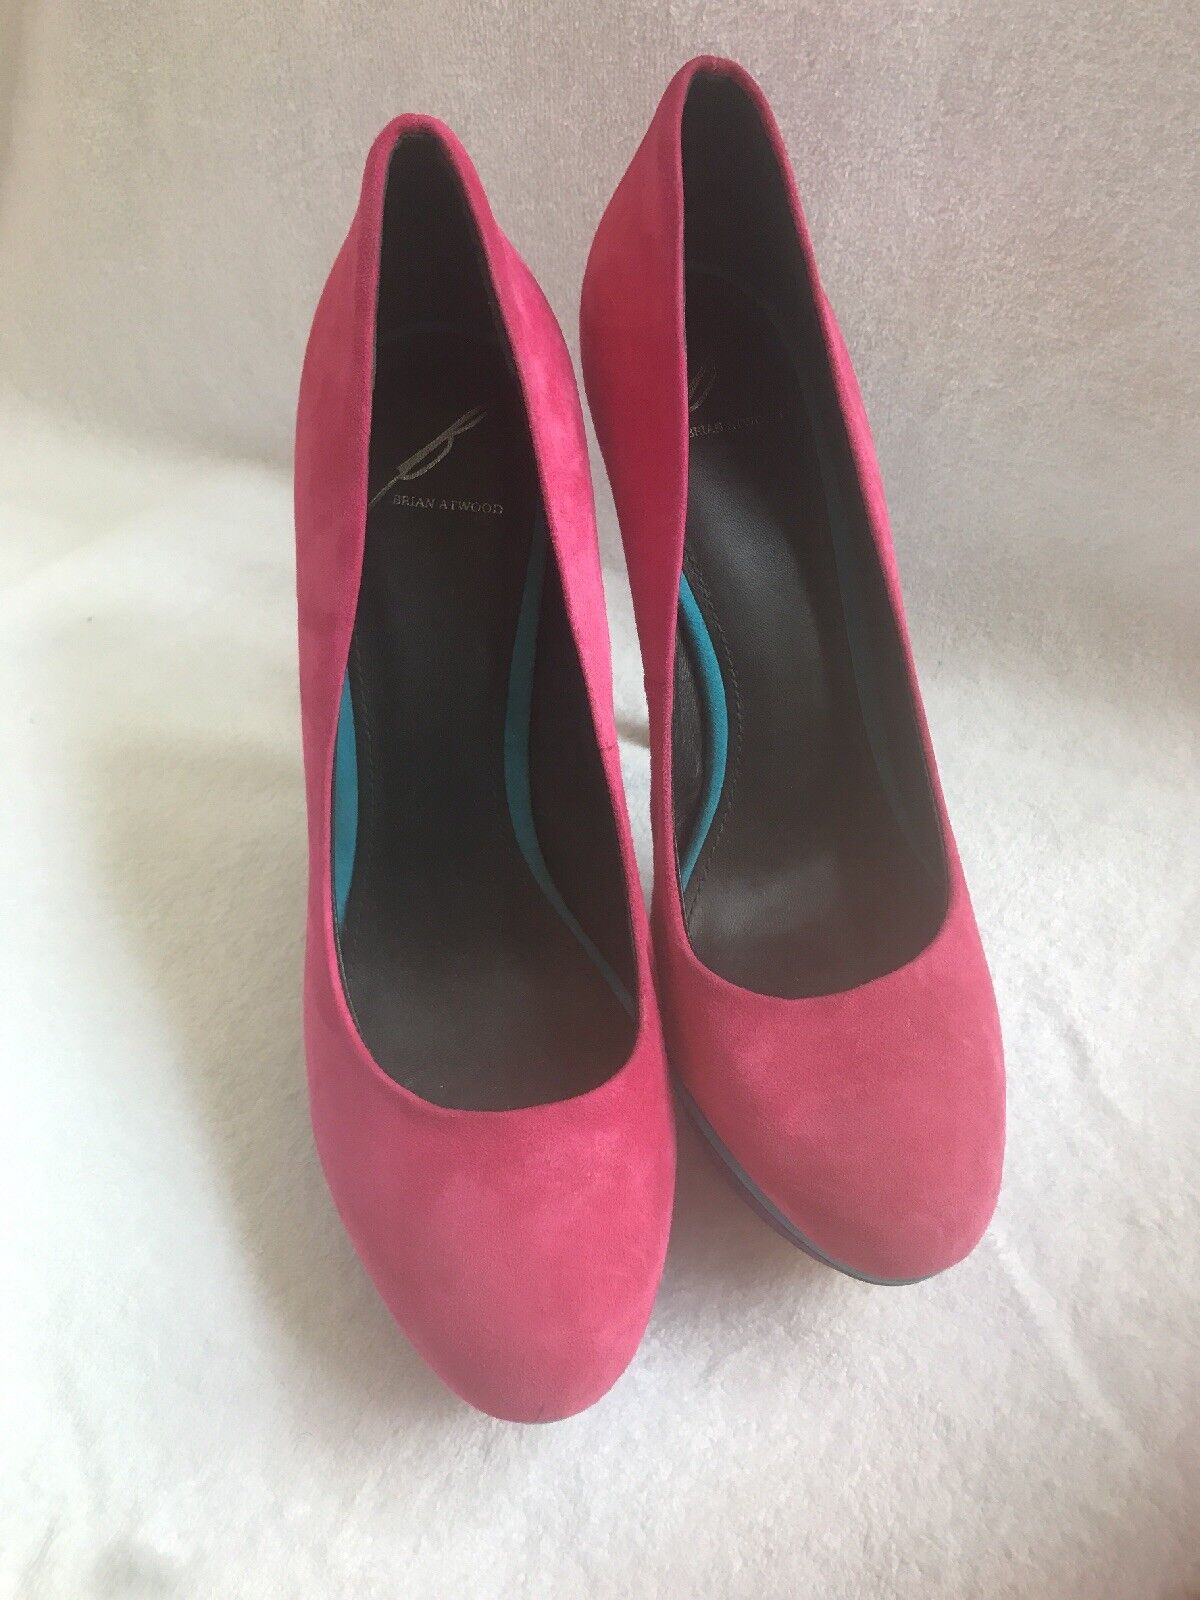 URS couleur Brian Atwood Pompes